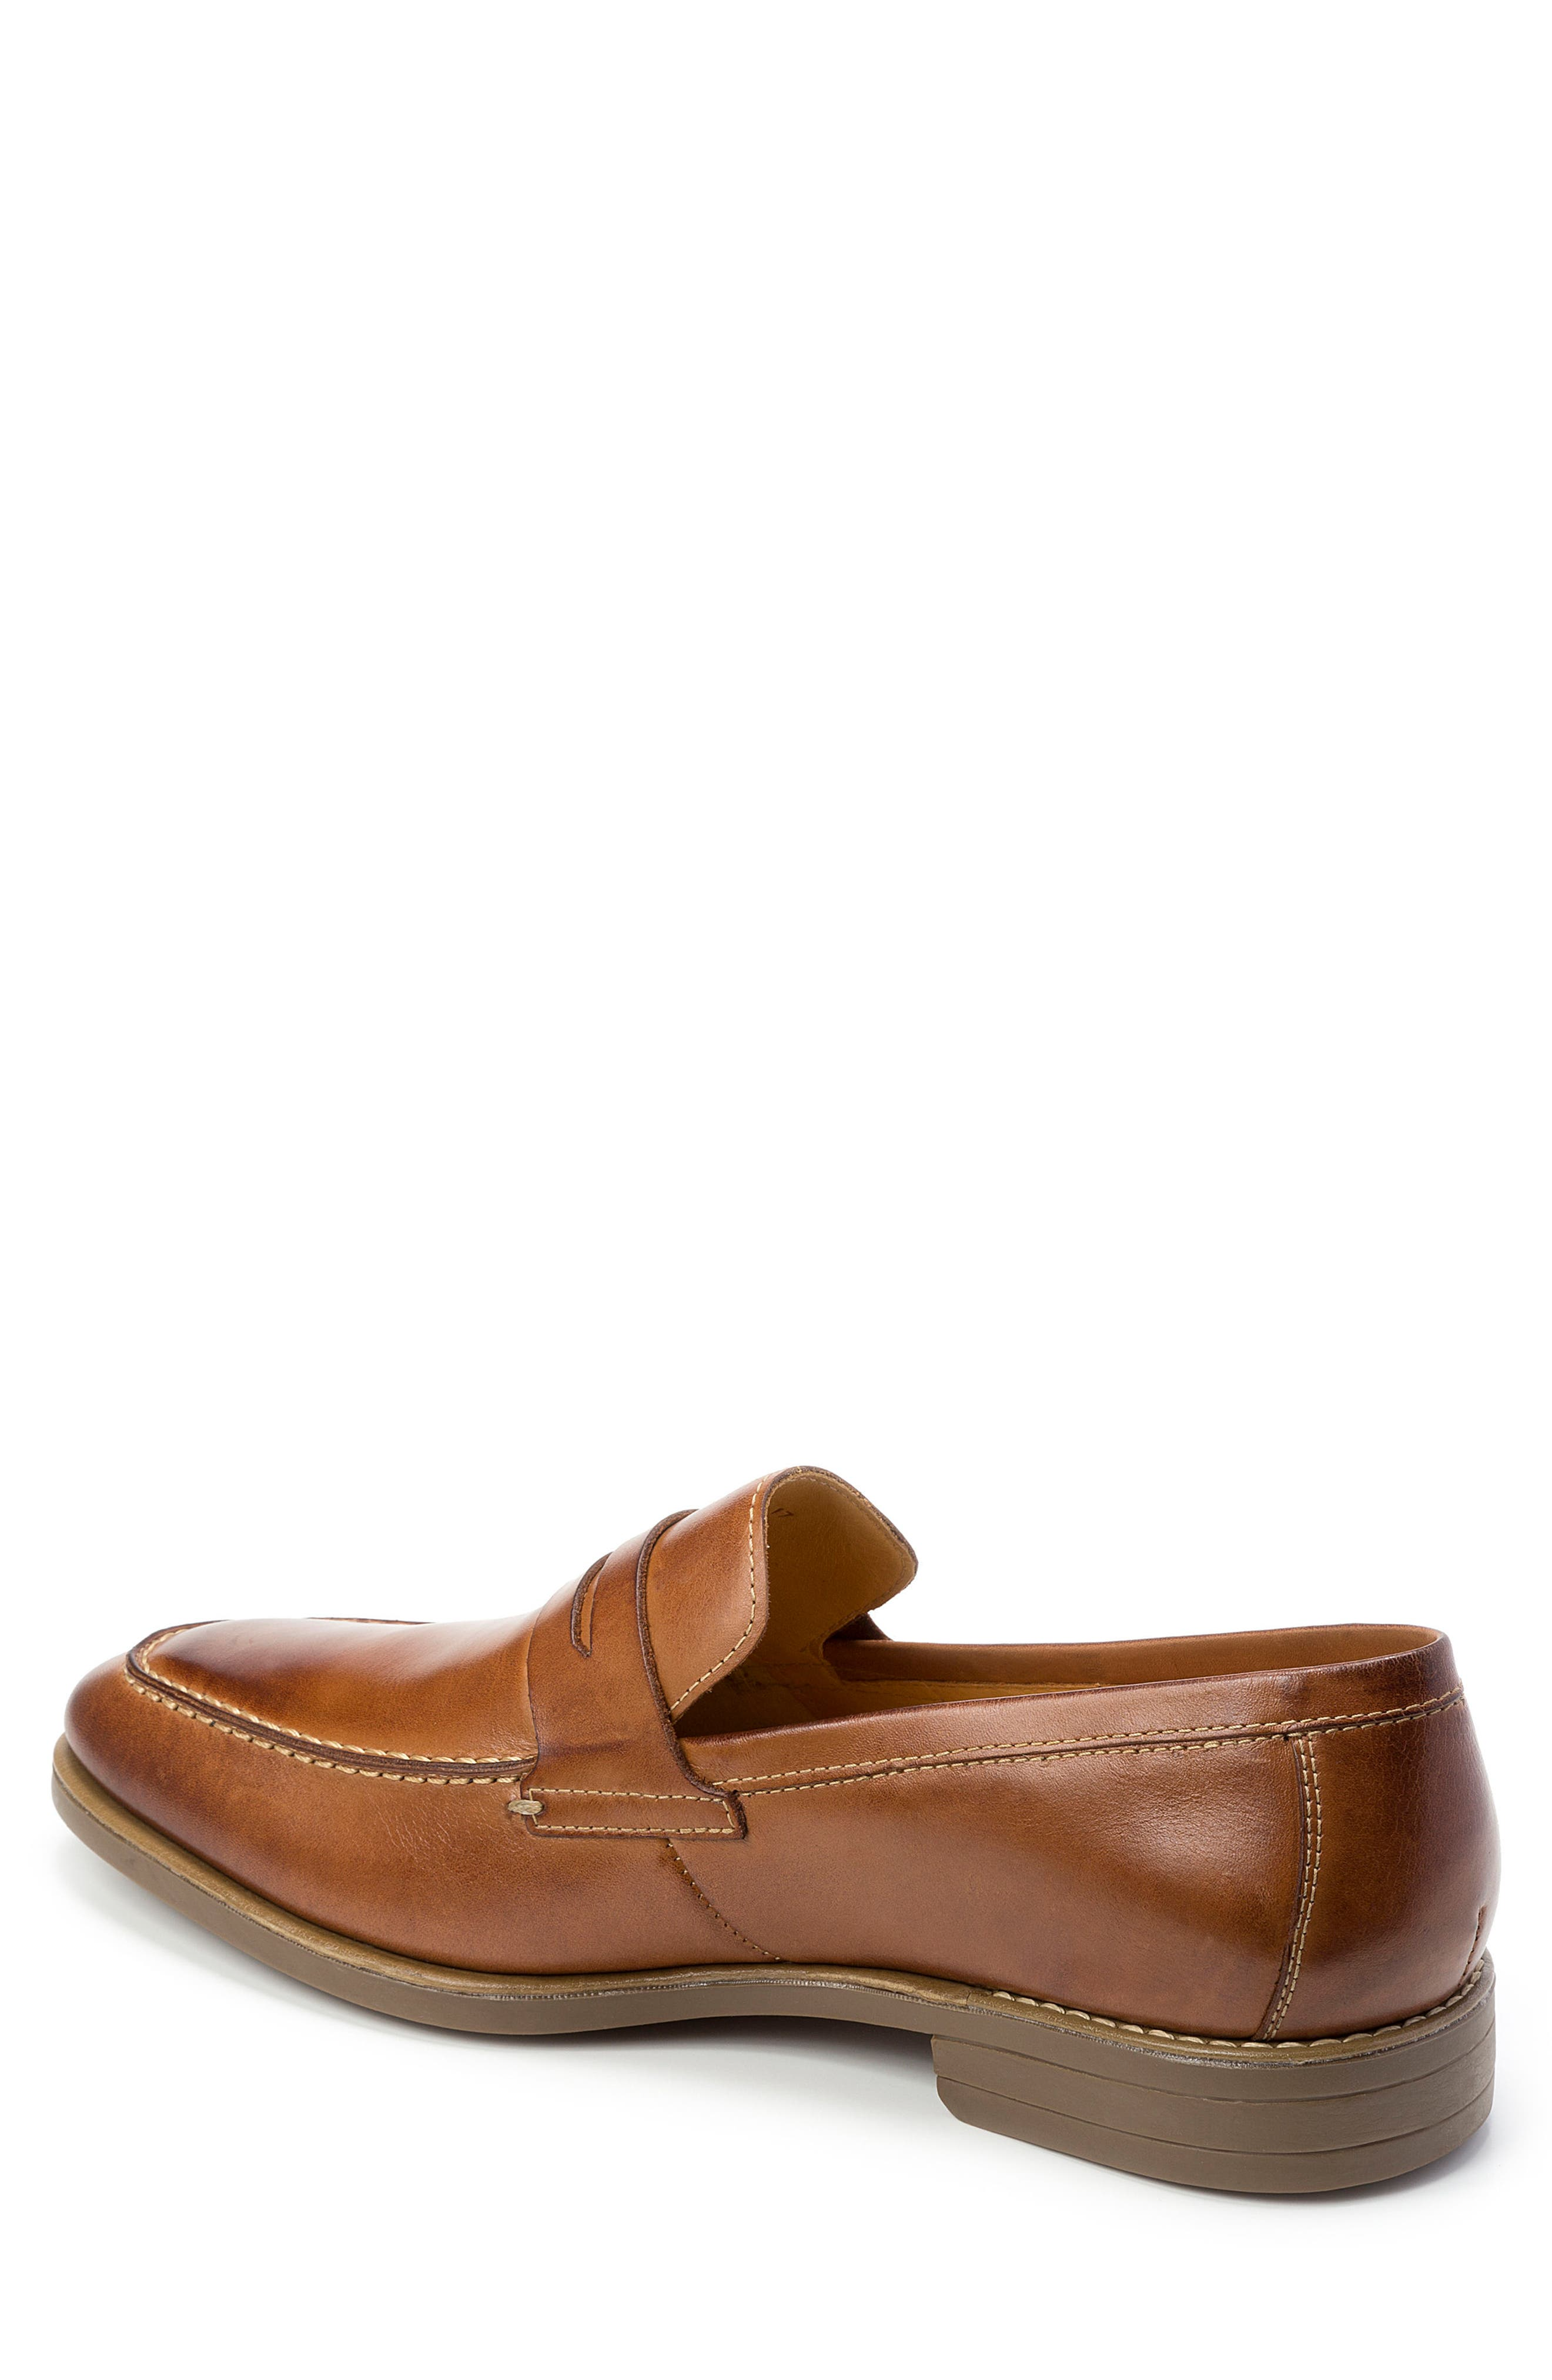 Murray Penny Loafer,                             Alternate thumbnail 2, color,                             TAN